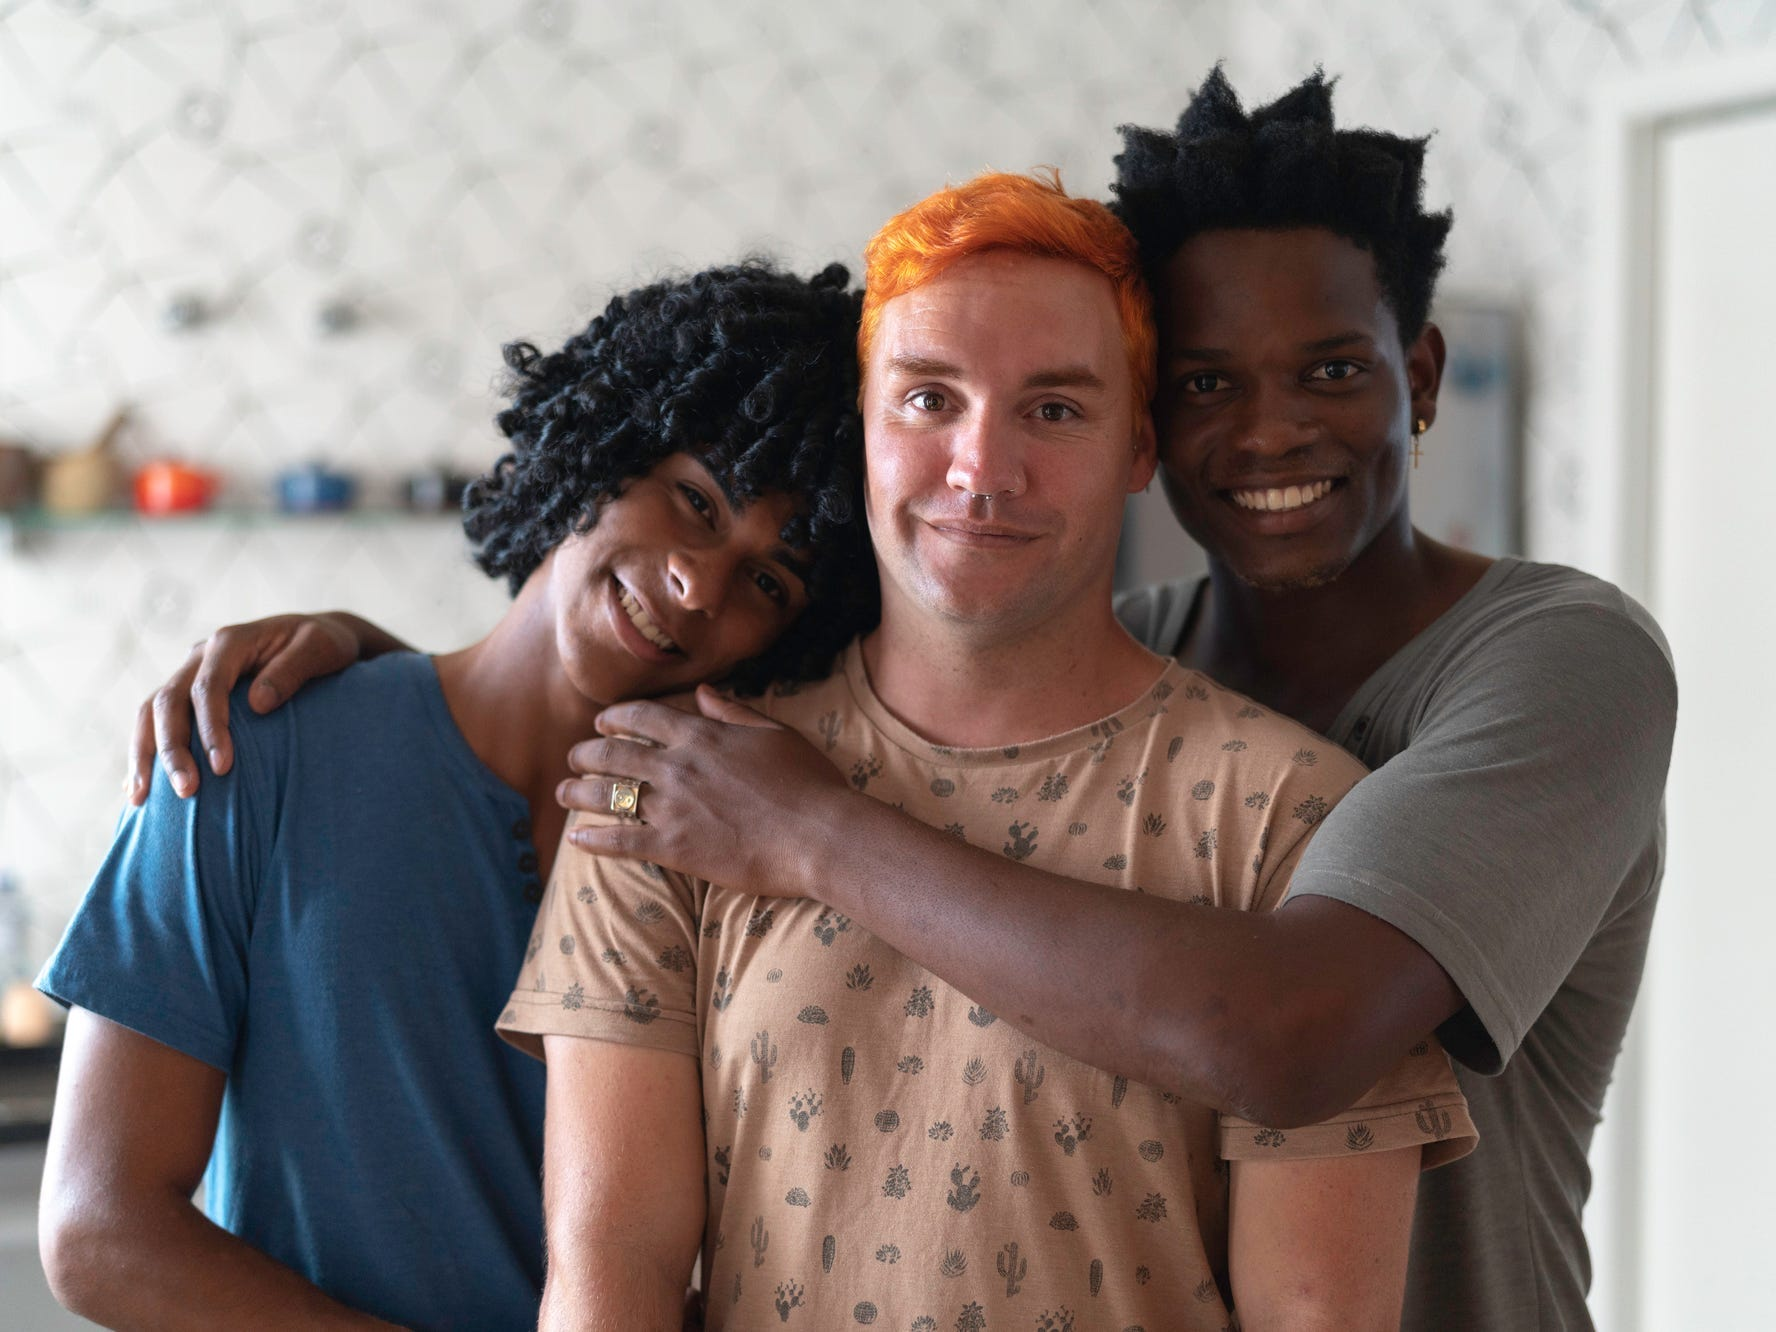 Interested in polyamory? Here's 5 tips for making romantic relationships work with multiple partners, according to a sex therapist